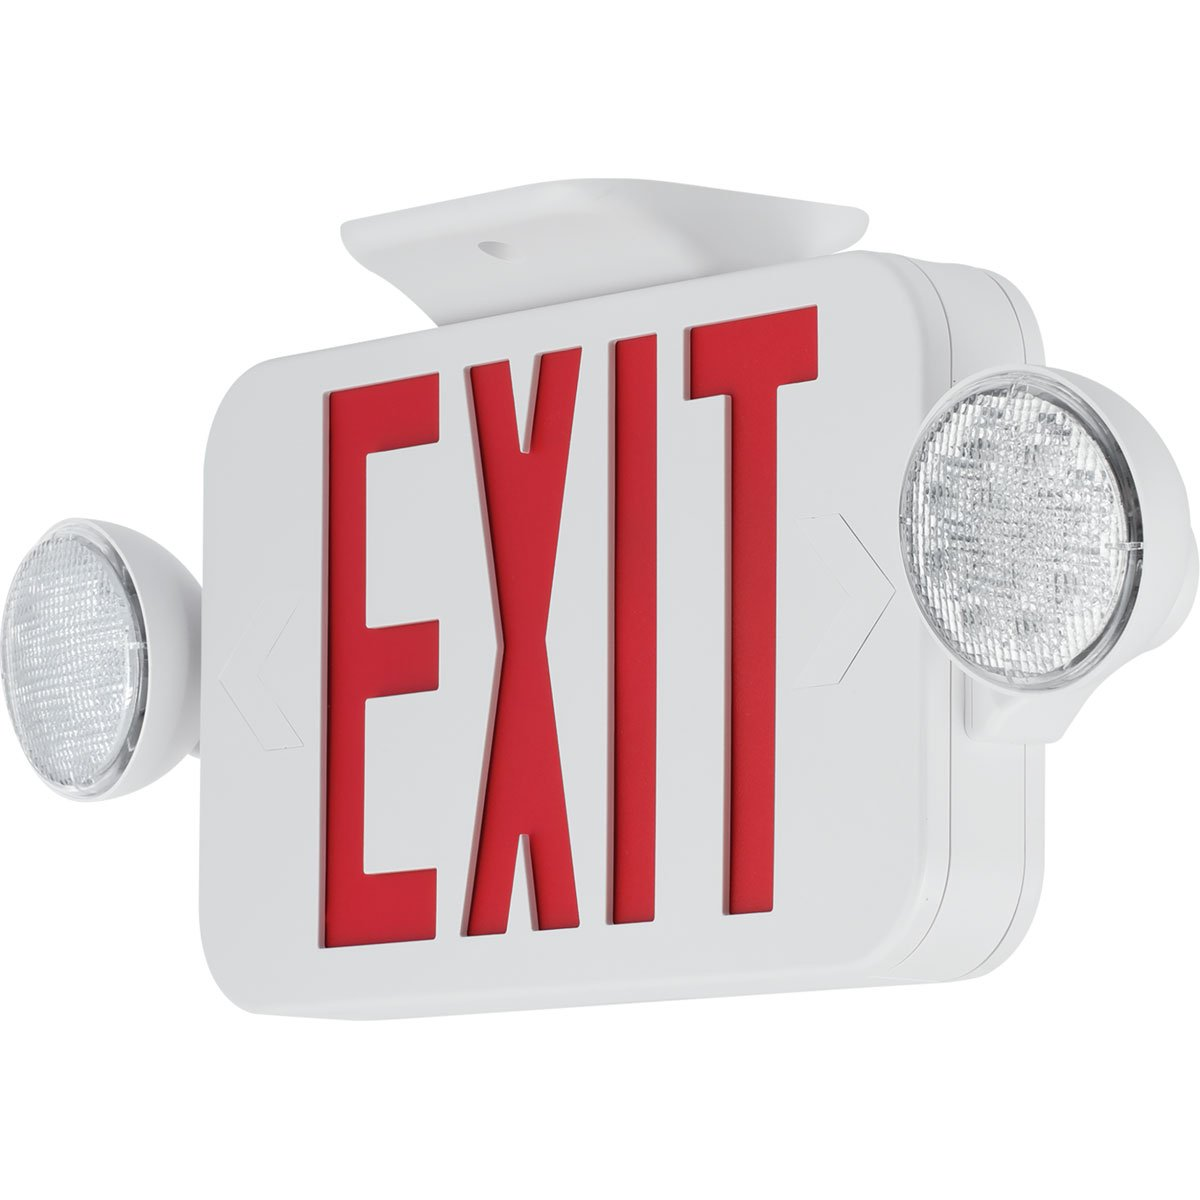 Progress Commercial PECUE-UR-30-RC LED Exit Sign Combo, White